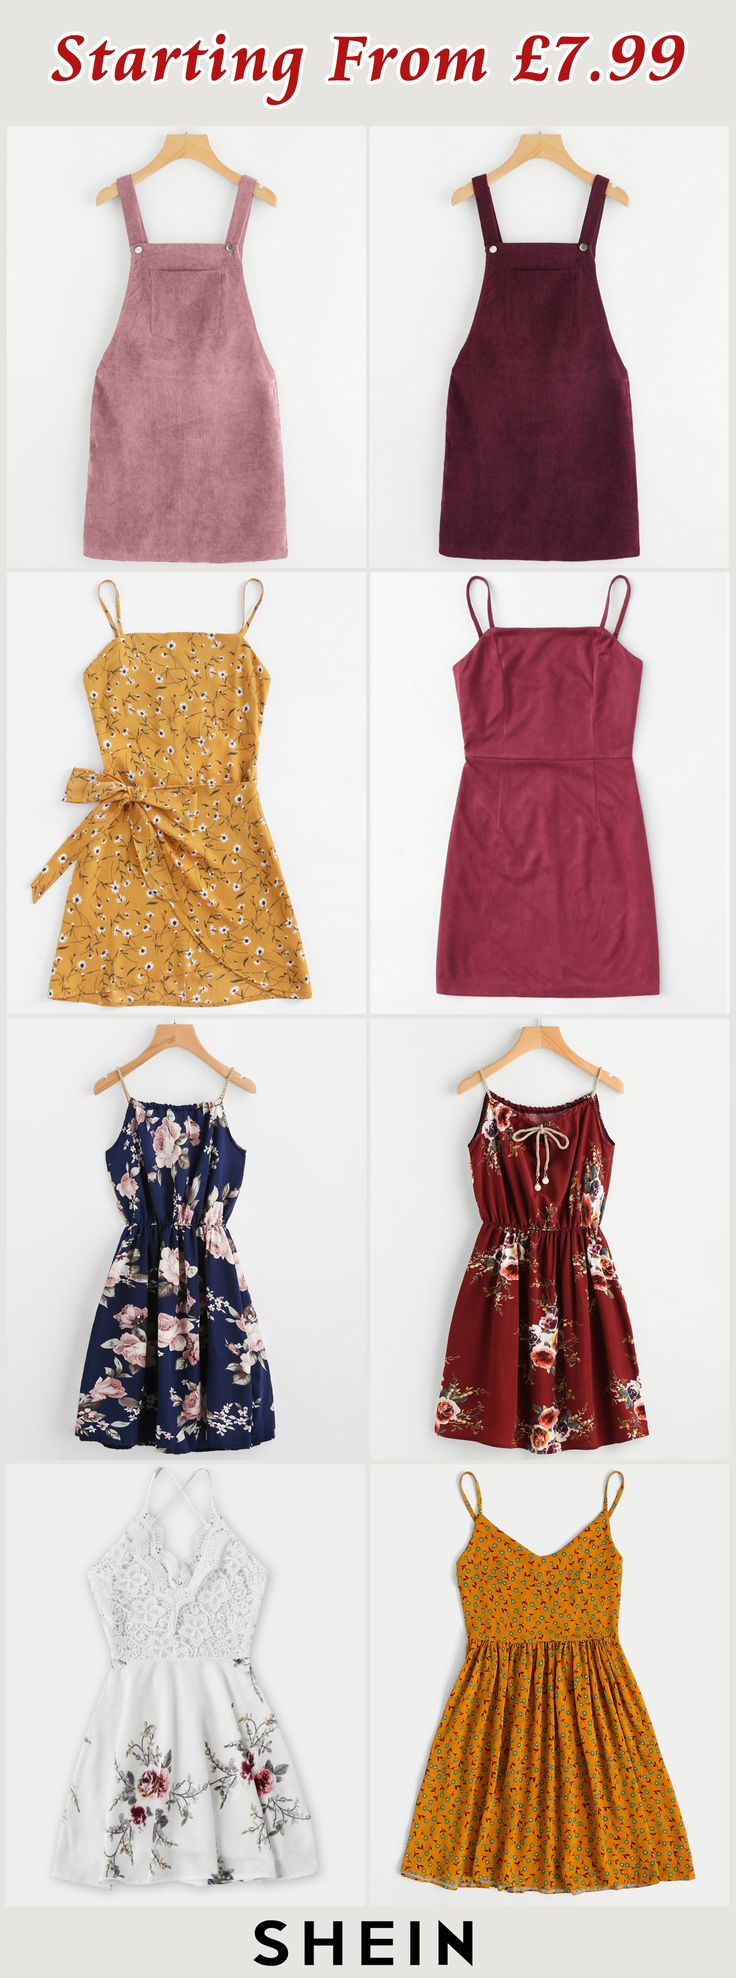 Starting From £7.99 (With images)  Fashion, Boho chic outfits, Outfits